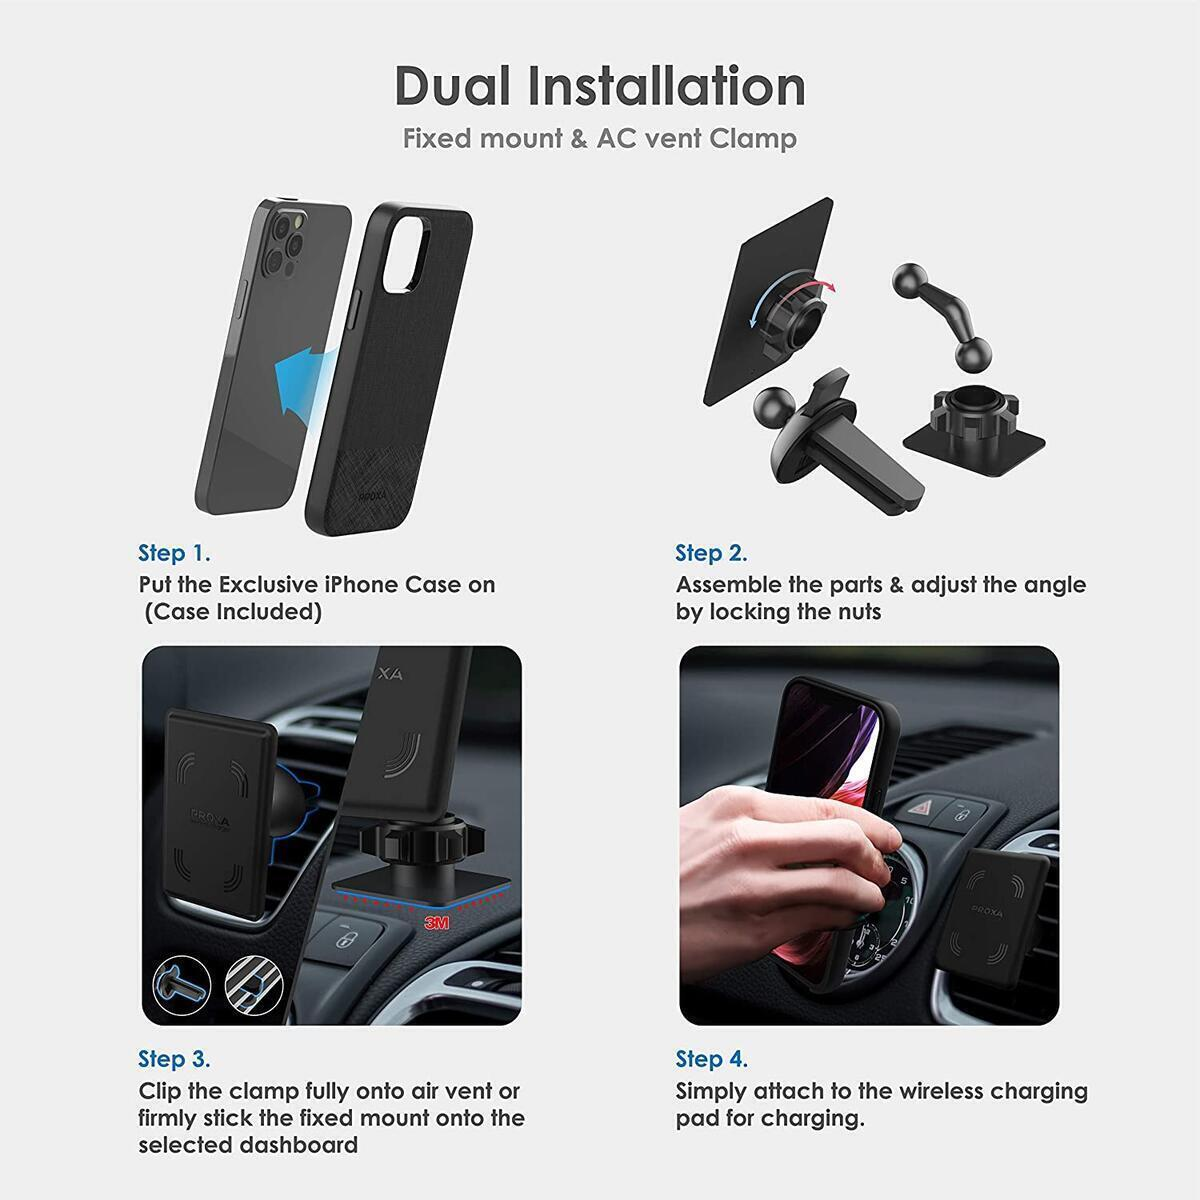 PROXA Magnetic Wireless Car Charger with 6.1 inch Case Designed for iPhone 12/12 Pro[MagSafe Compatible]&Dual Installation Mount&Dual Port QC 3.0 Car Adapter-Compatible with iPhone 12/12 Pro